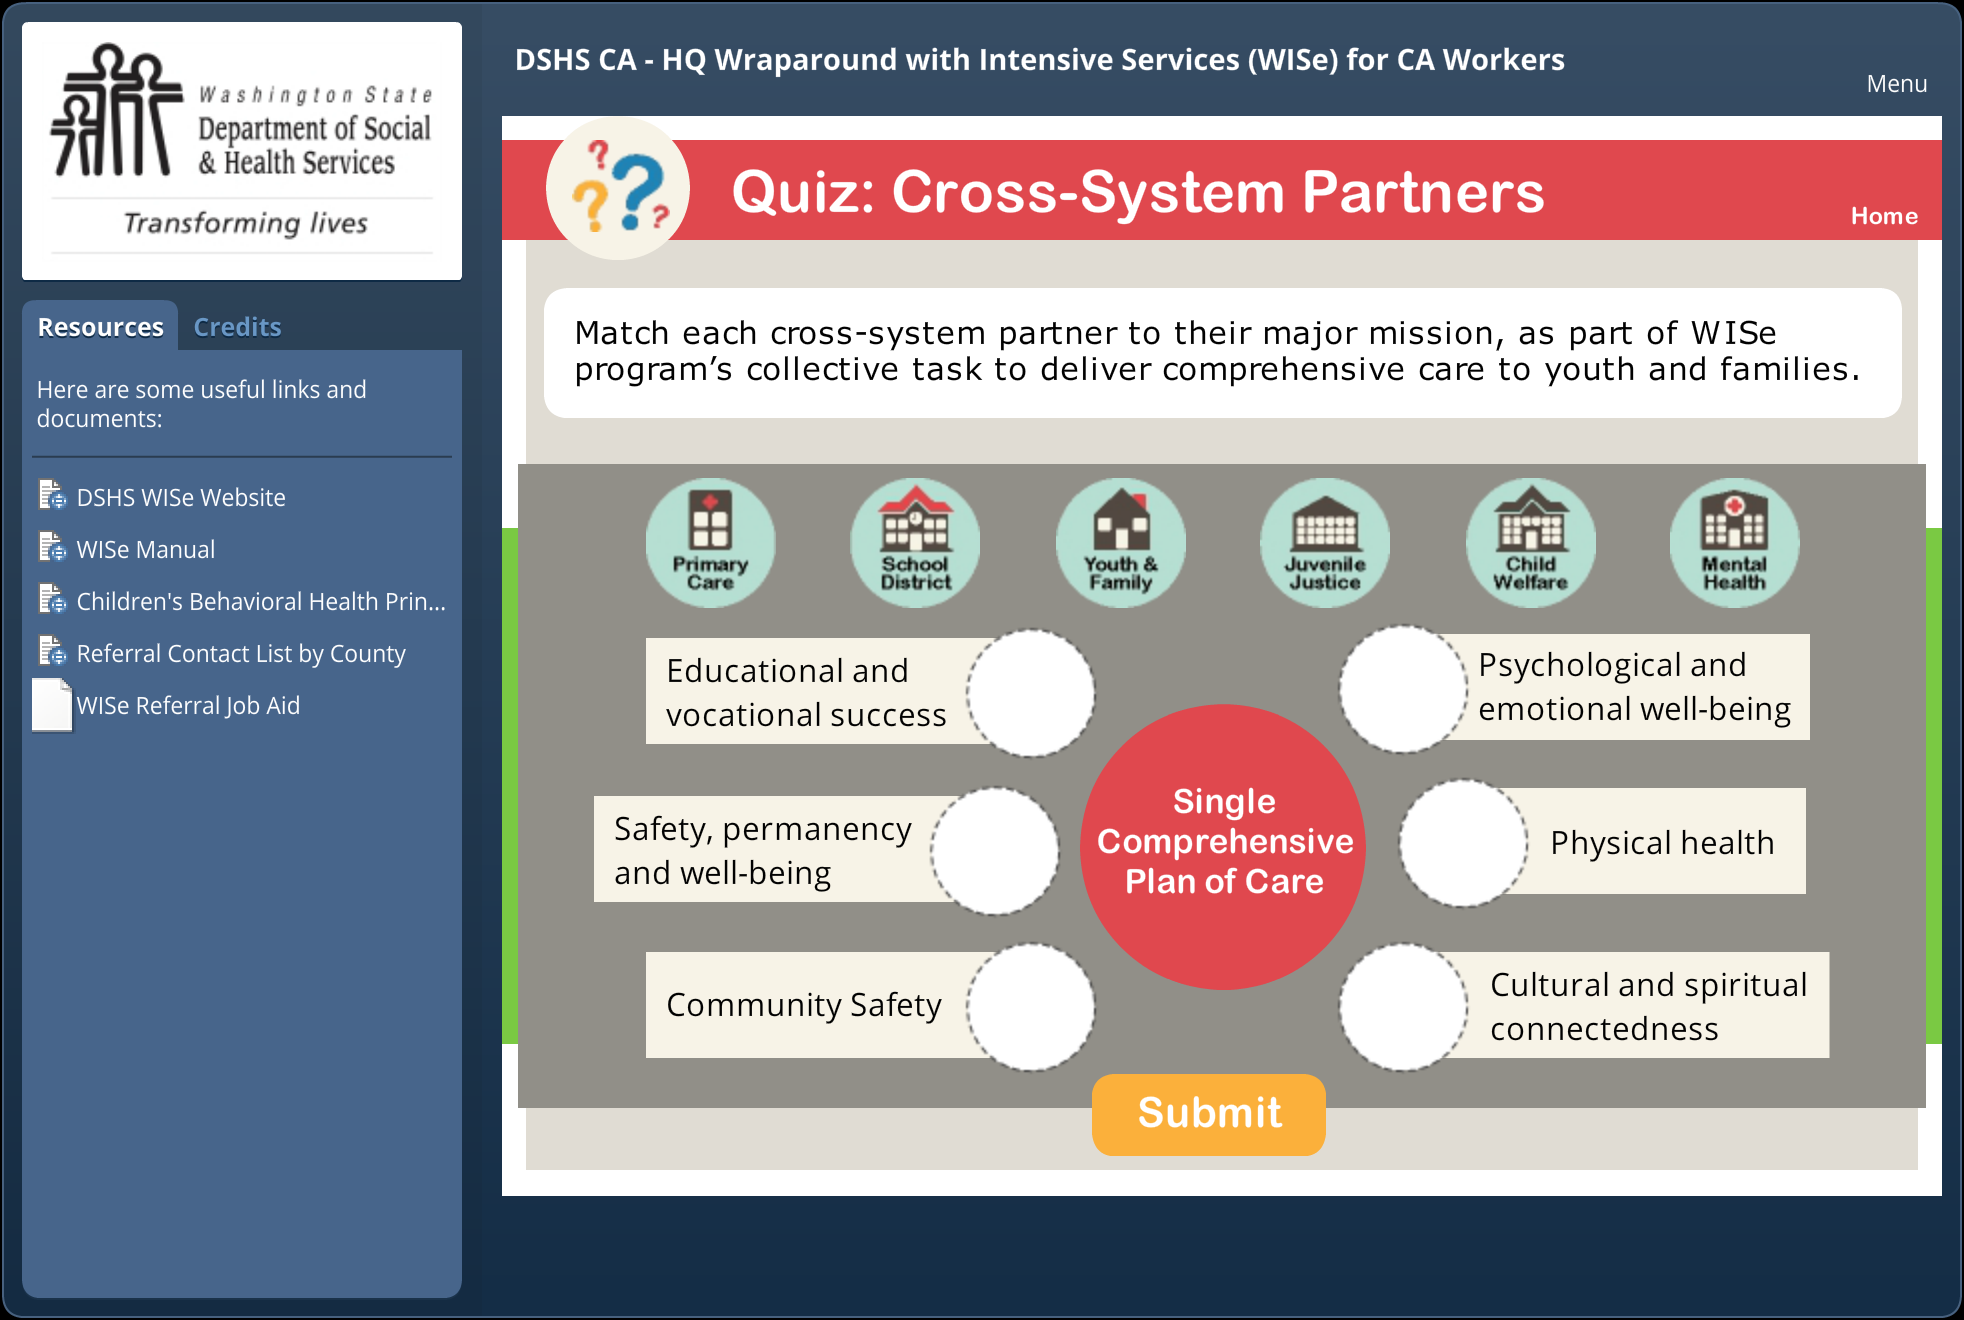 Quiz: Cross-System Partners